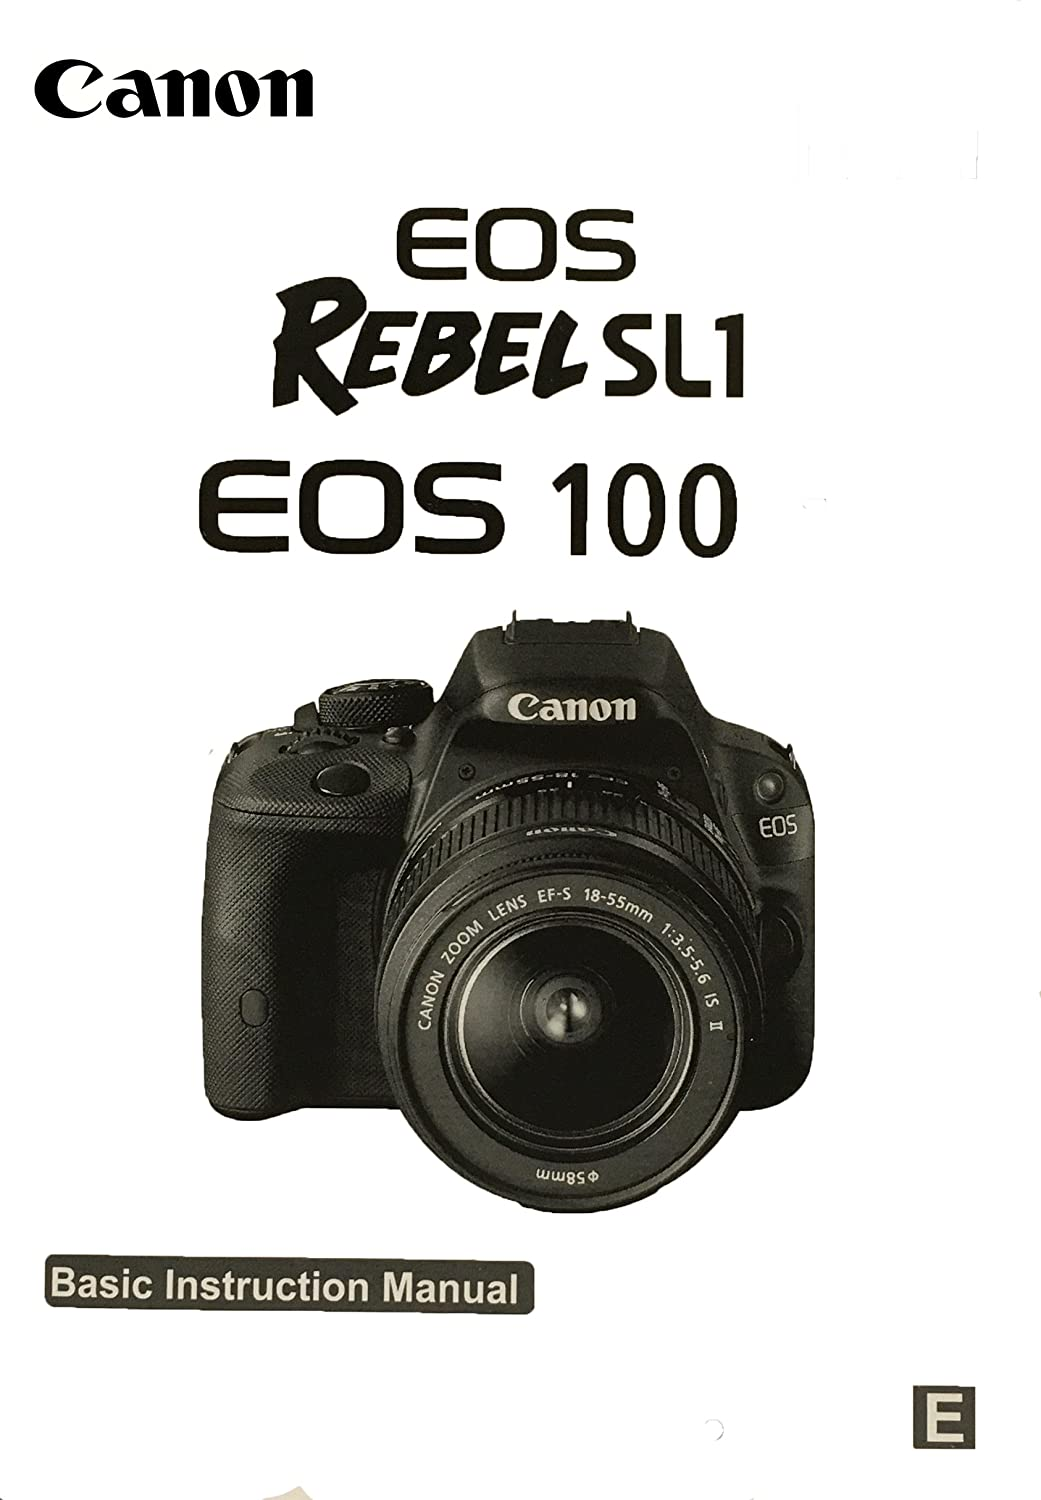 Amazon.com : Canon EOS Rebel SL1 Basic Instruction Manual for Canon Cameras  : Camera & Photo